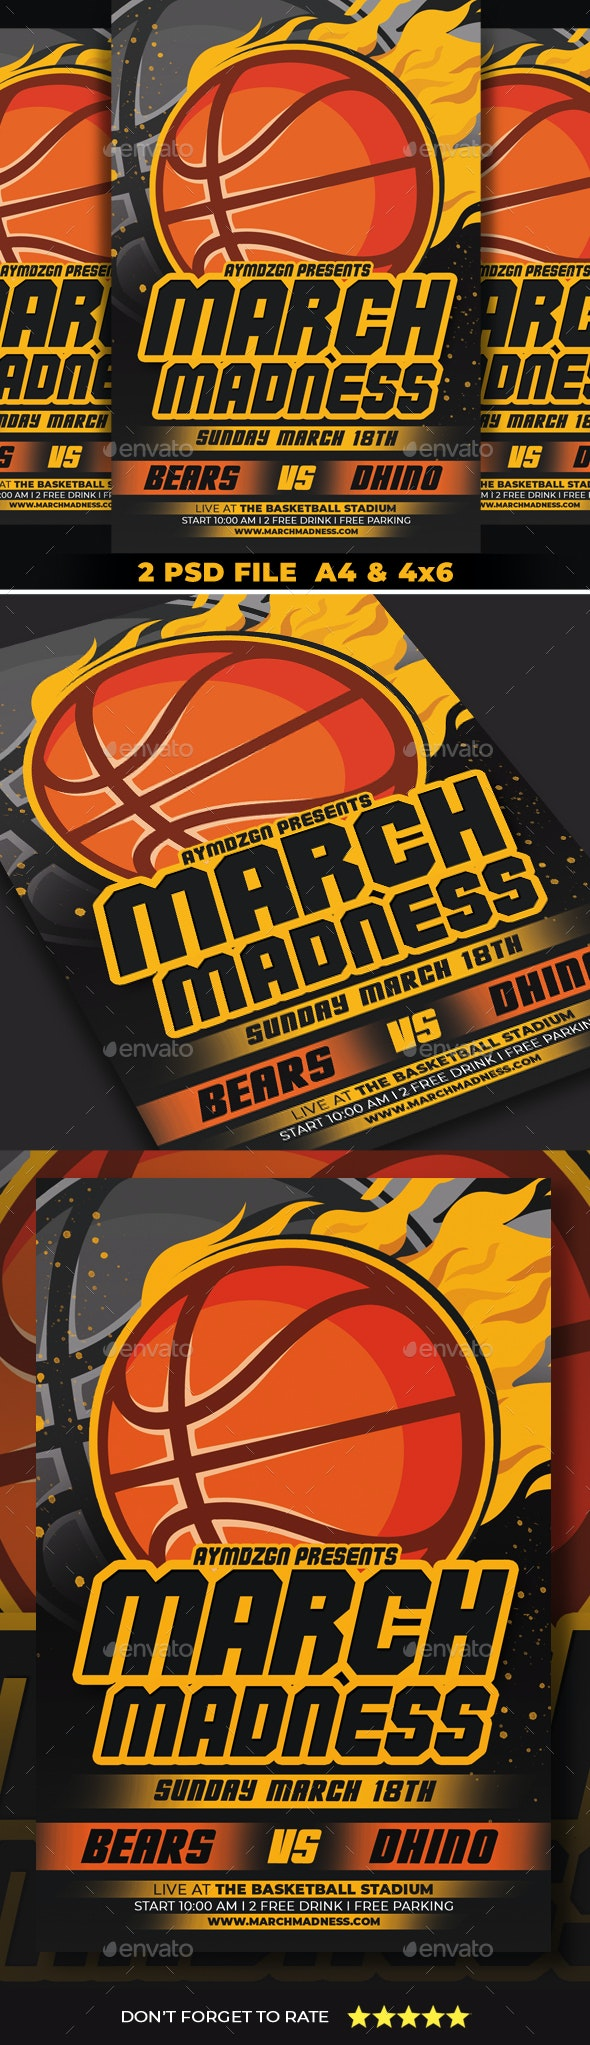 March Madness Flyer - Sports Events